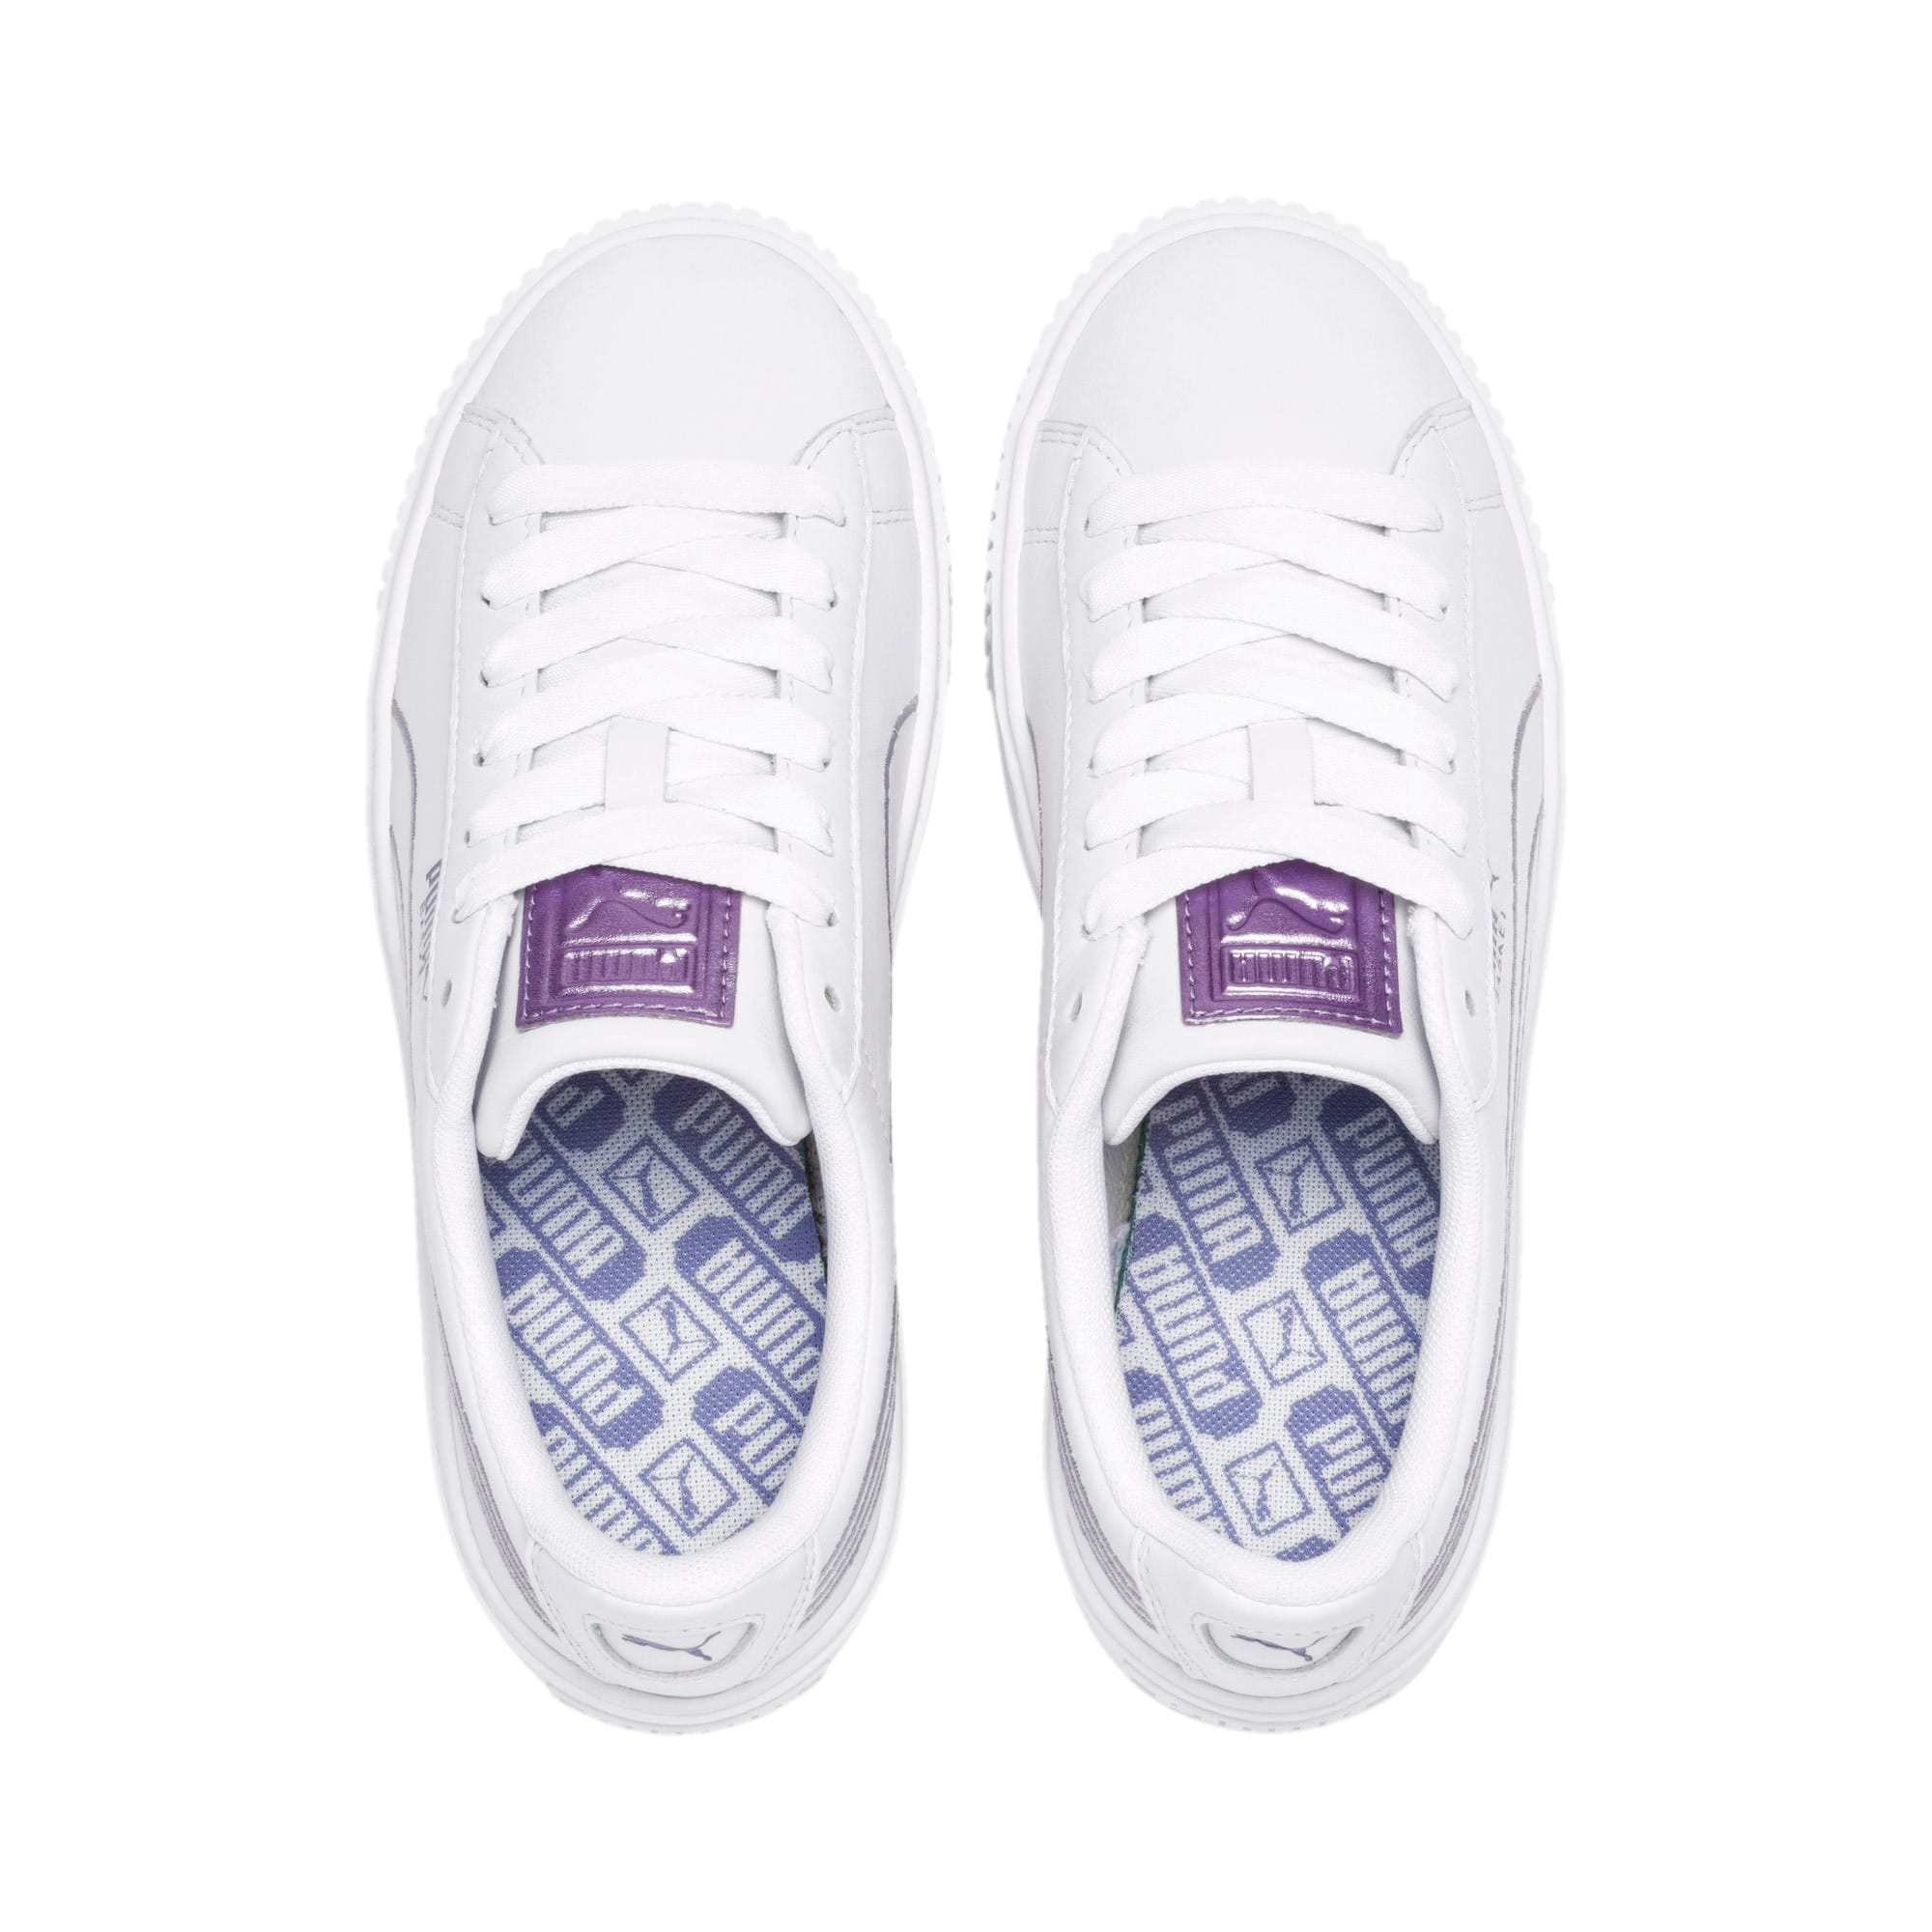 Thumbnail 6 of Platform Twilight Wn's, Puma White-Sweet Lavender, medium-IND